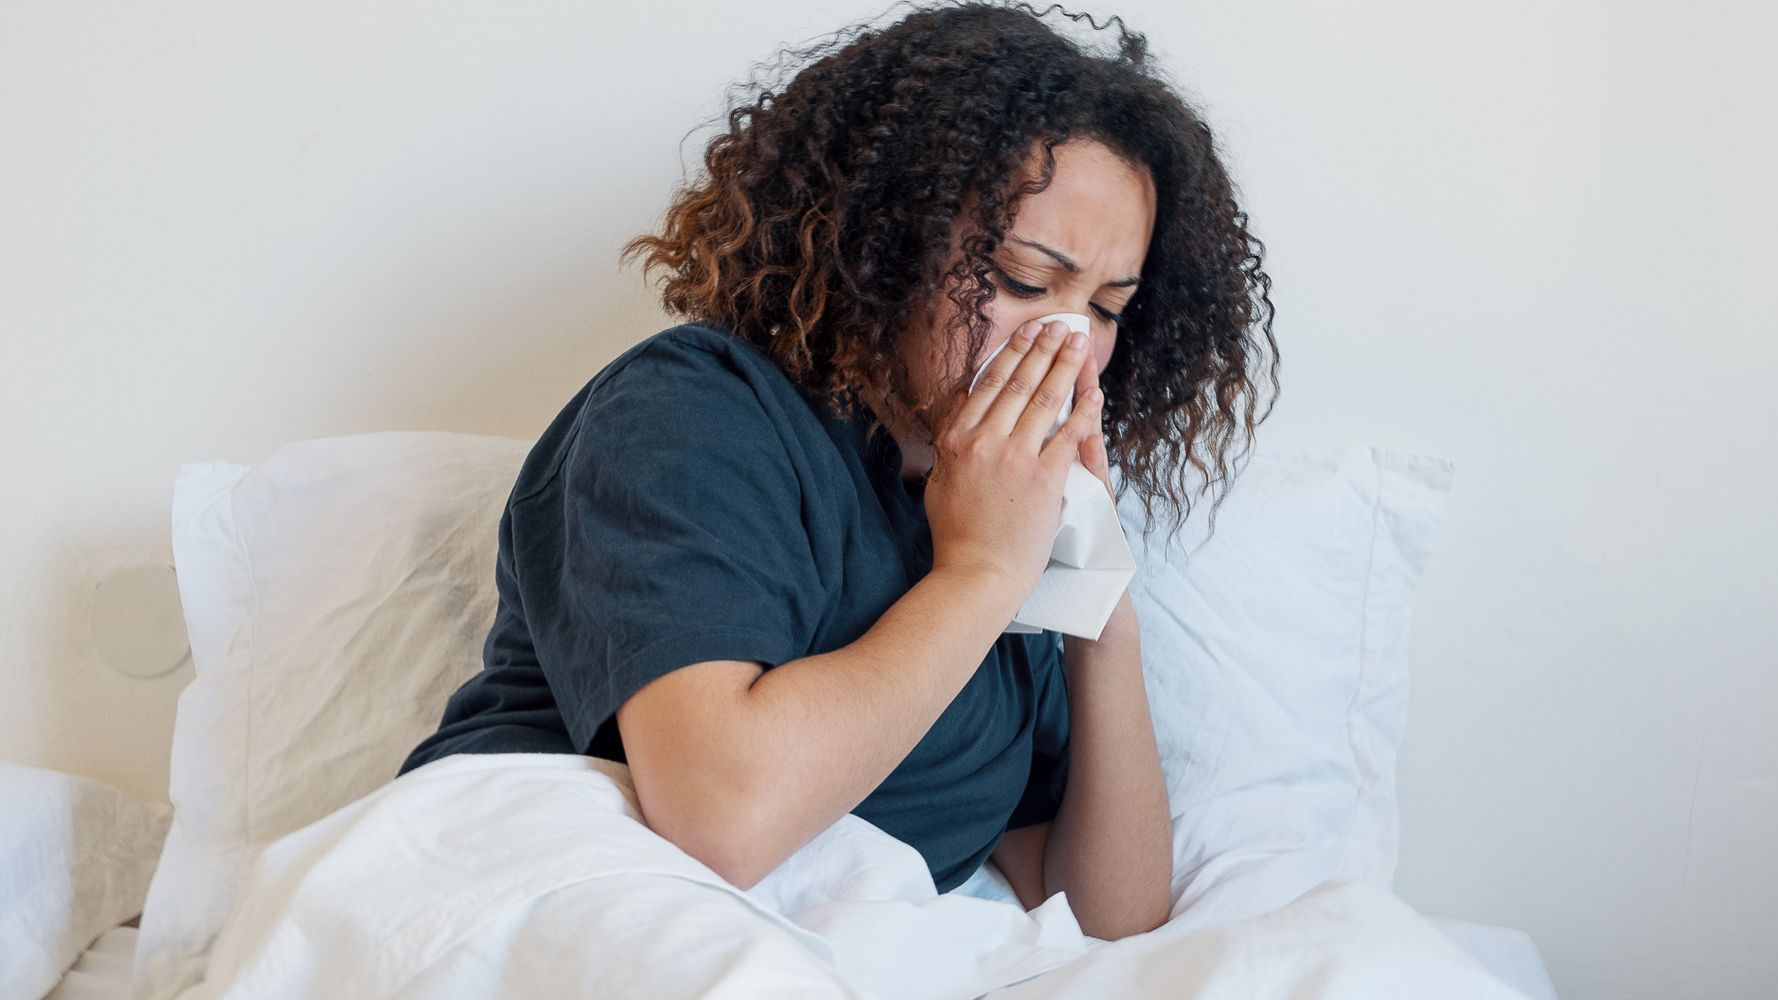 Do You Have The Flu Or Just A Cold? Here's How To Tell